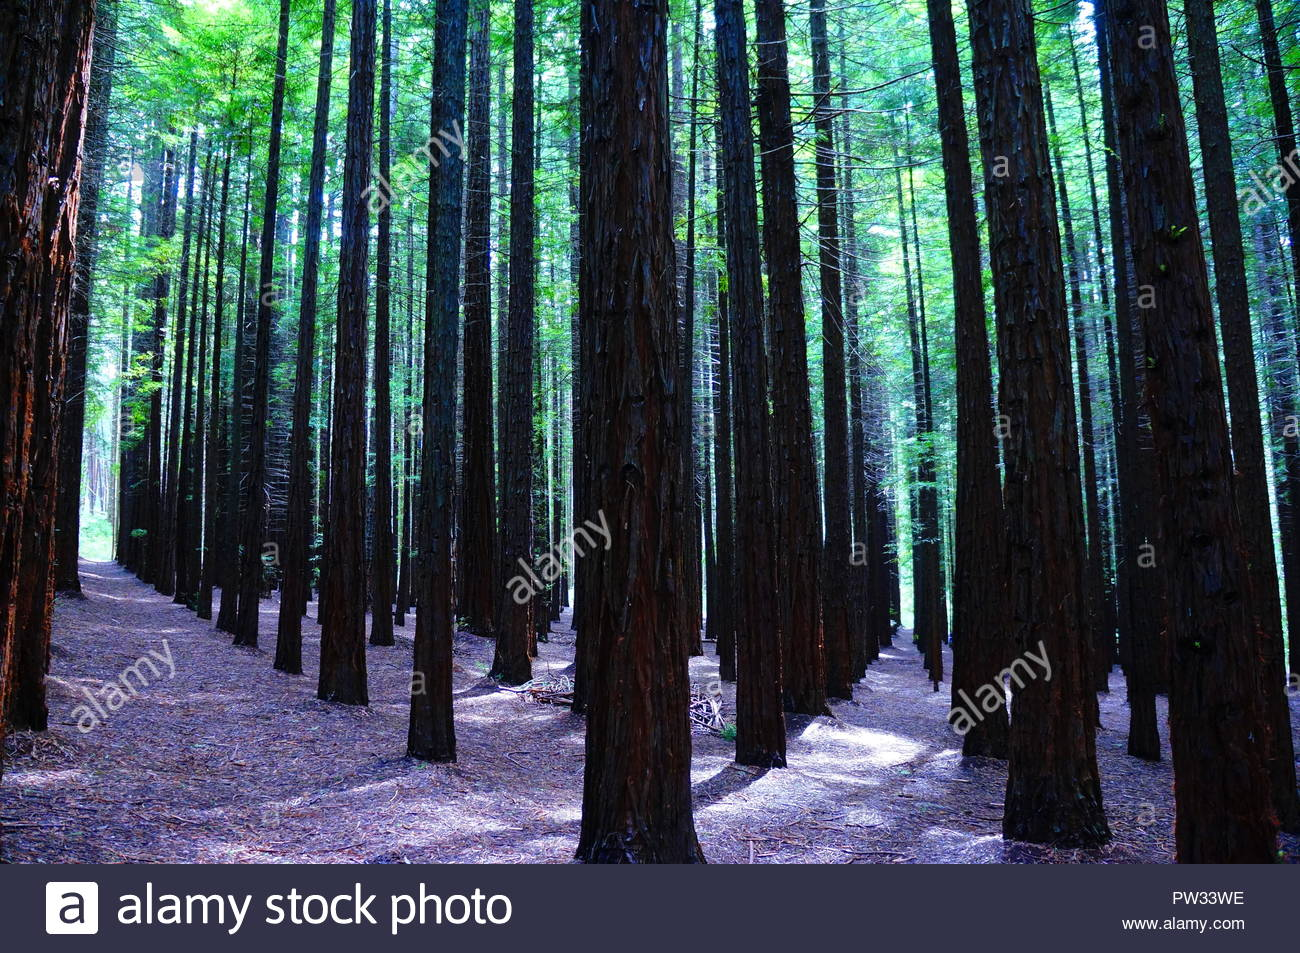 The Redwood forest of warburton - Stock Image